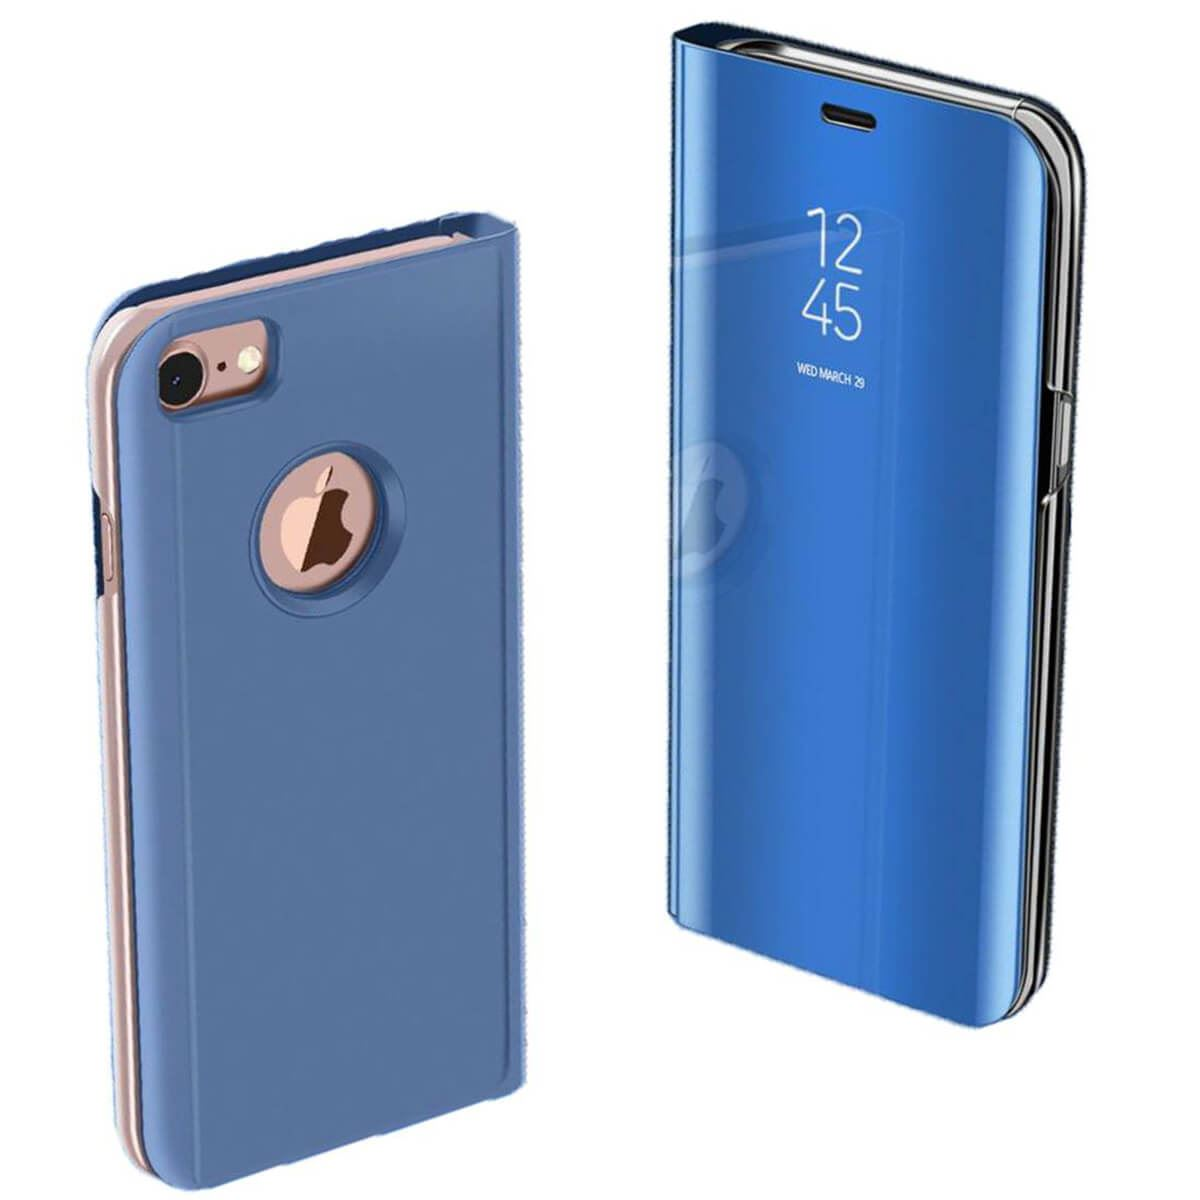 Apple-iPhone-6-6s-7-8-X-Plus-Smart-View-Mirror-Leather-Flip-Stand-Case-Cover thumbnail 8